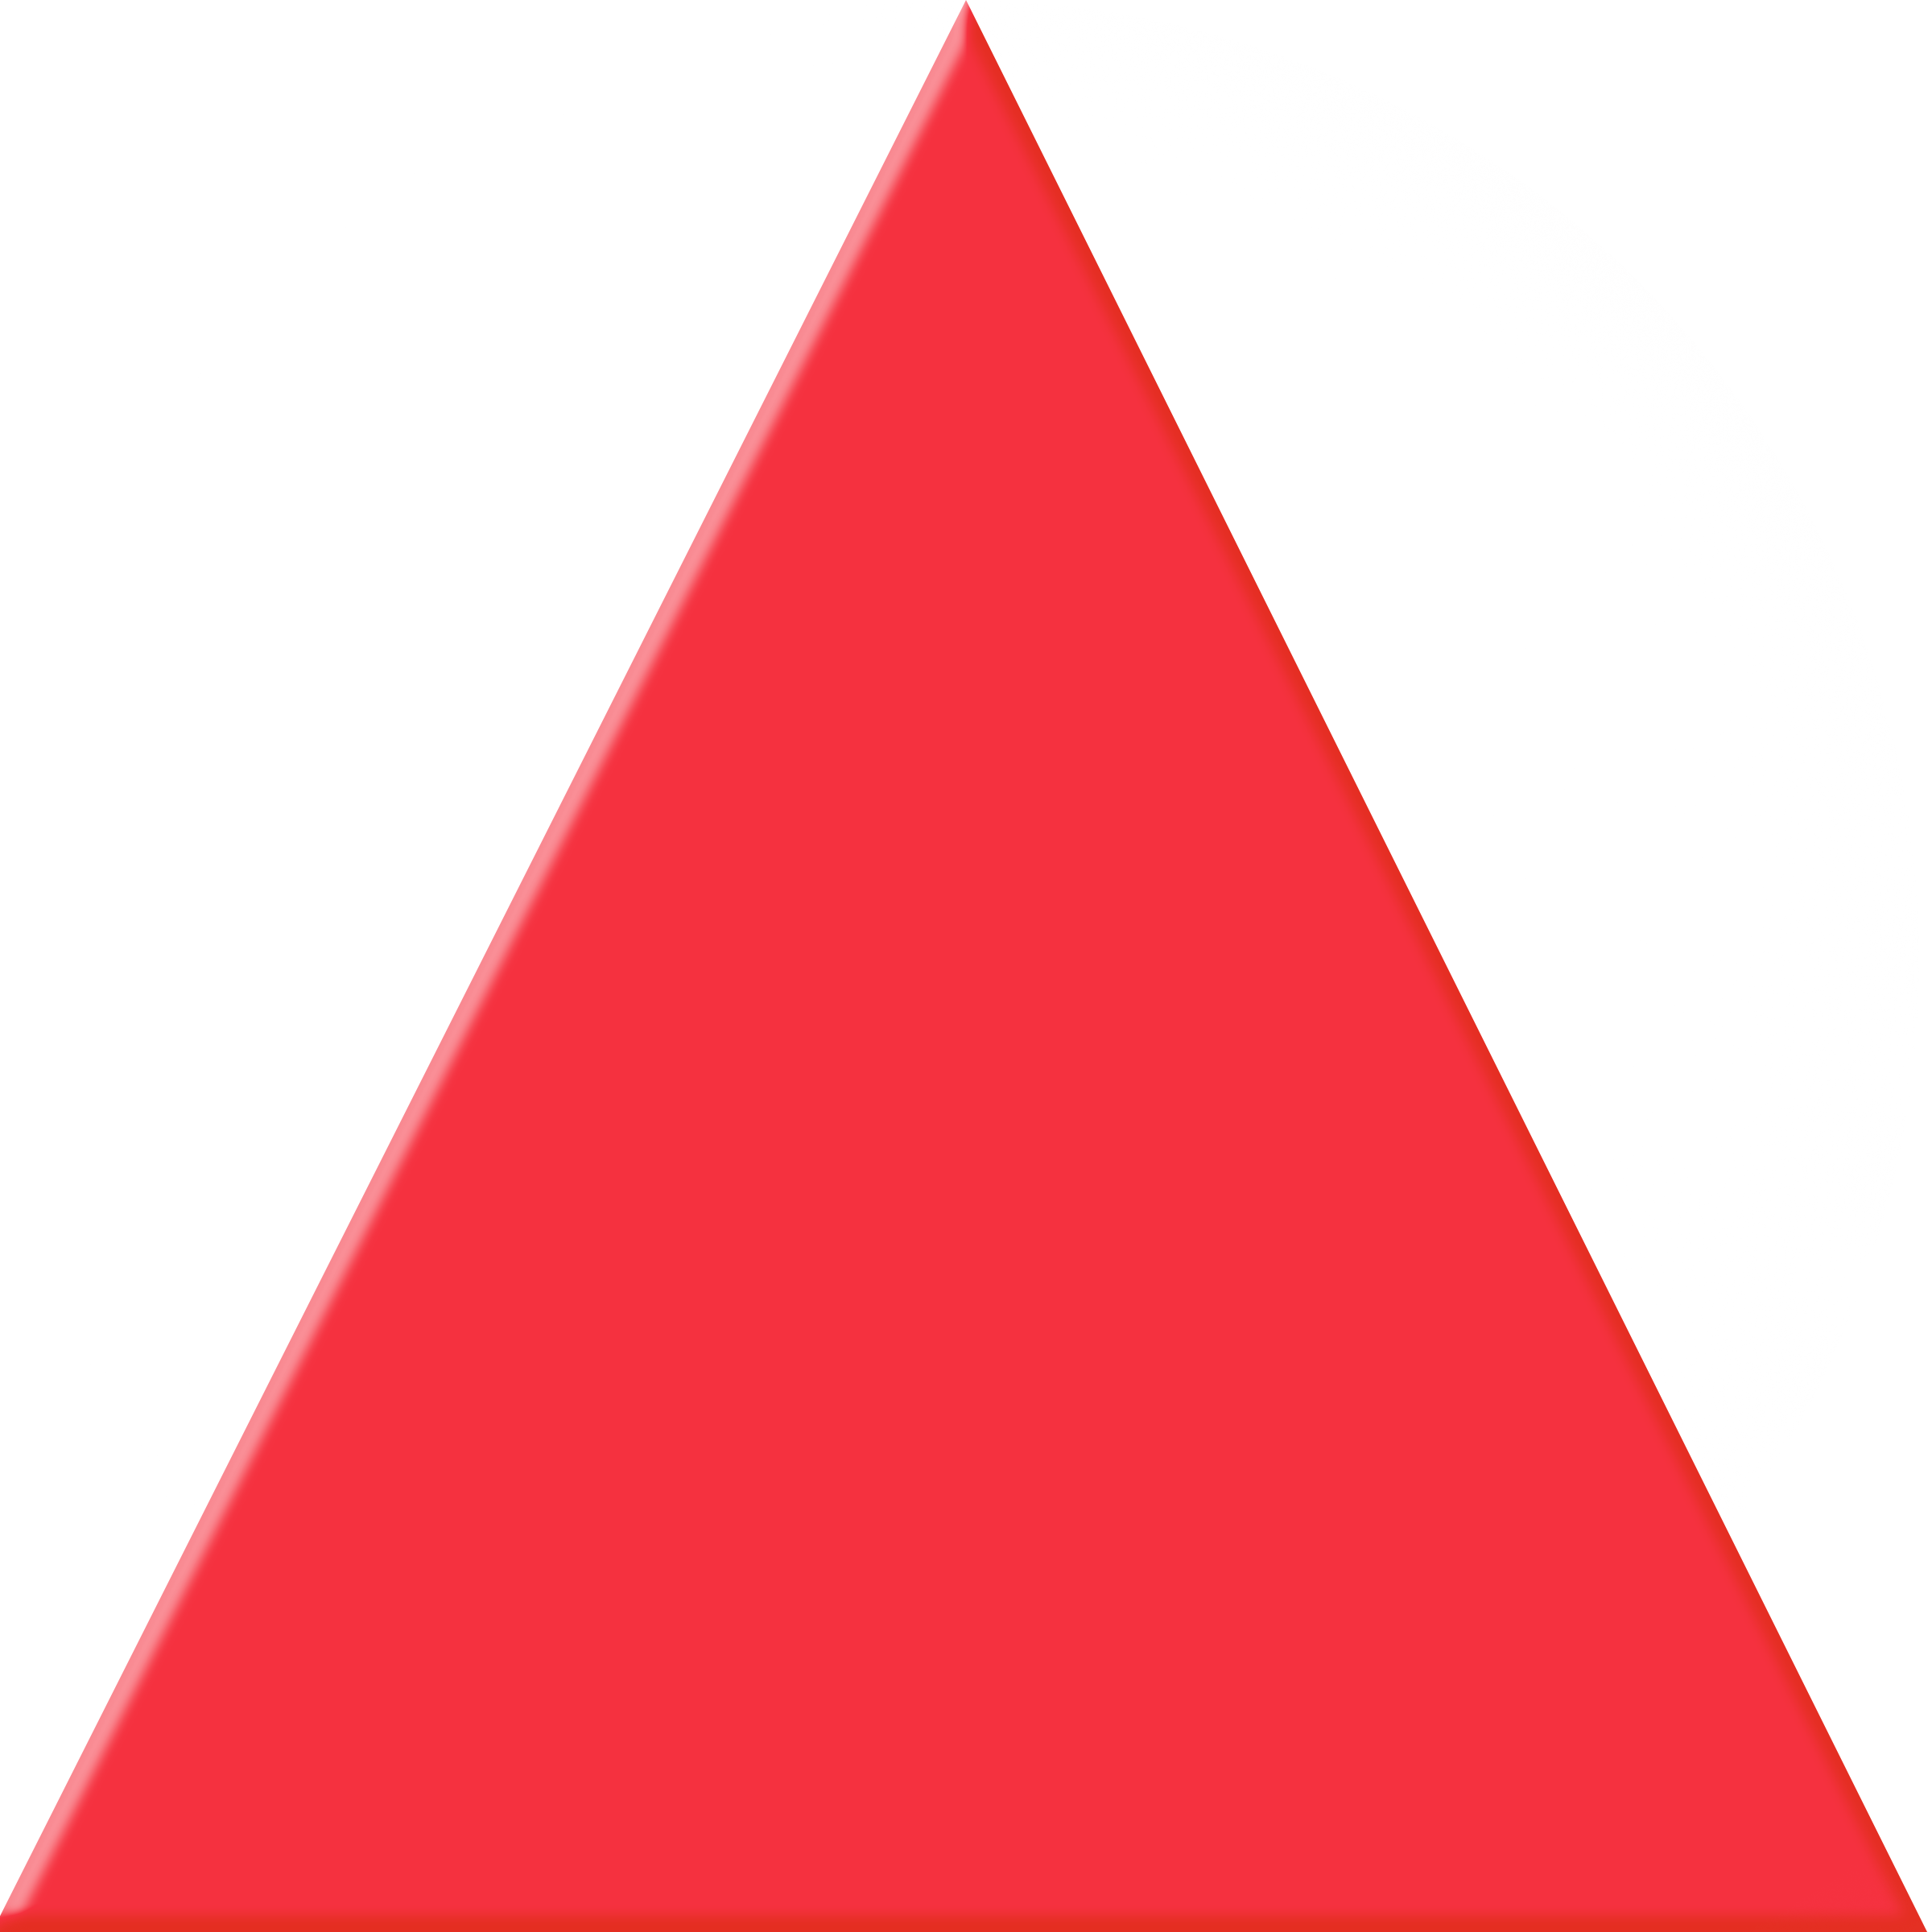 Triangle png transparent image. Triangular clipart kid clip art free library